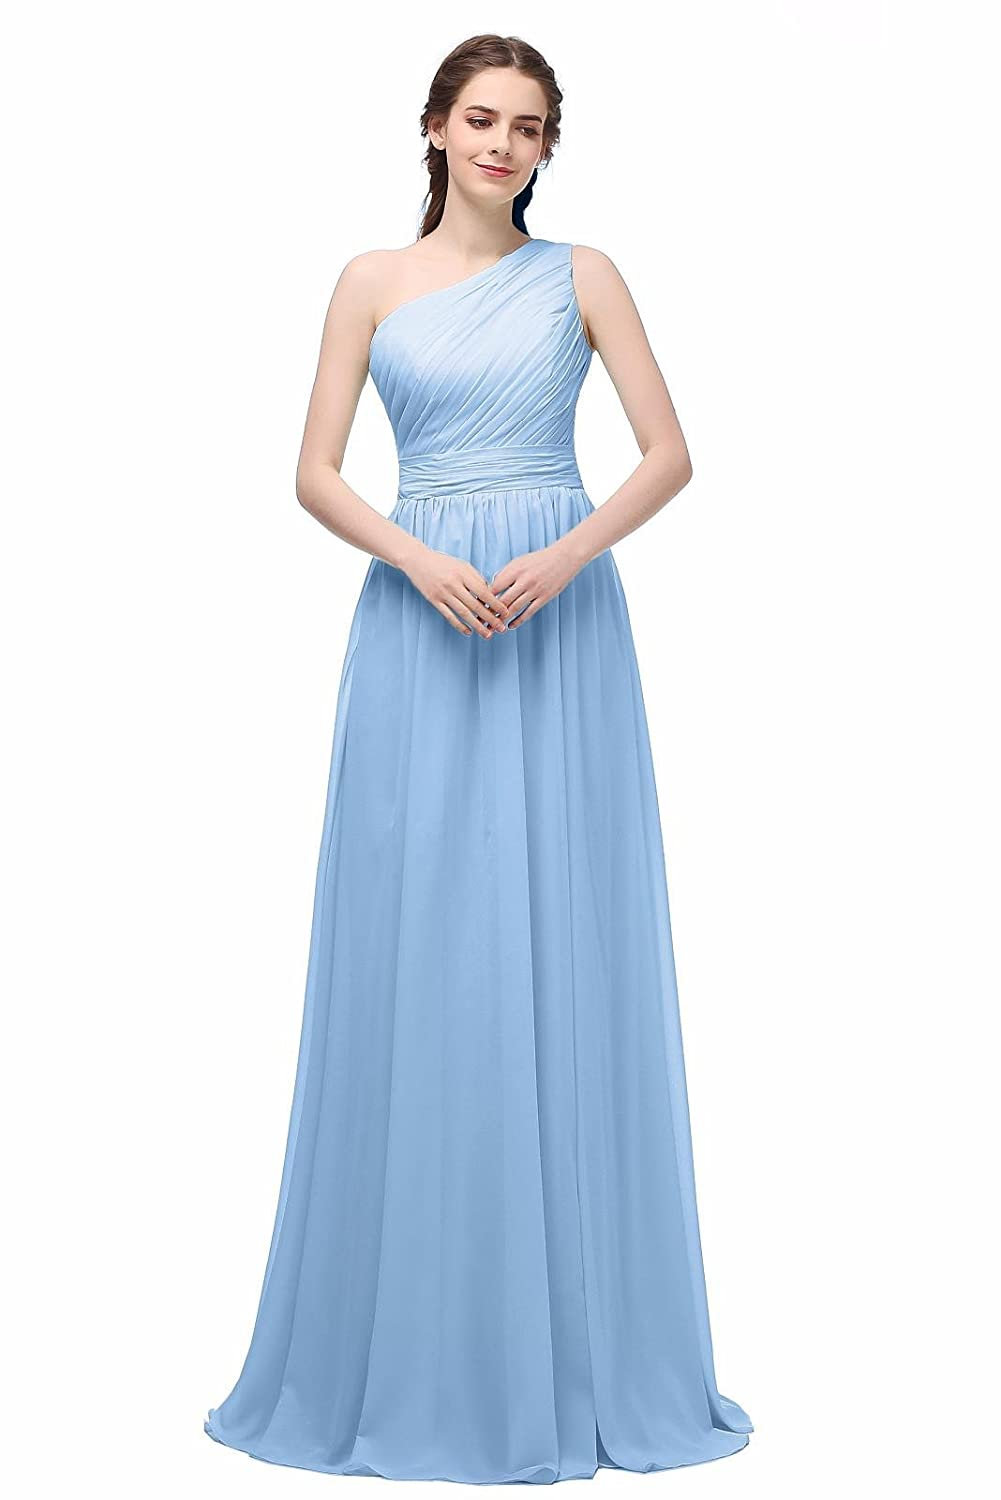 Bridesmaid dresses amazon womens bridesmaid chiffon prom dresses long evening gowns ombrellifo Gallery